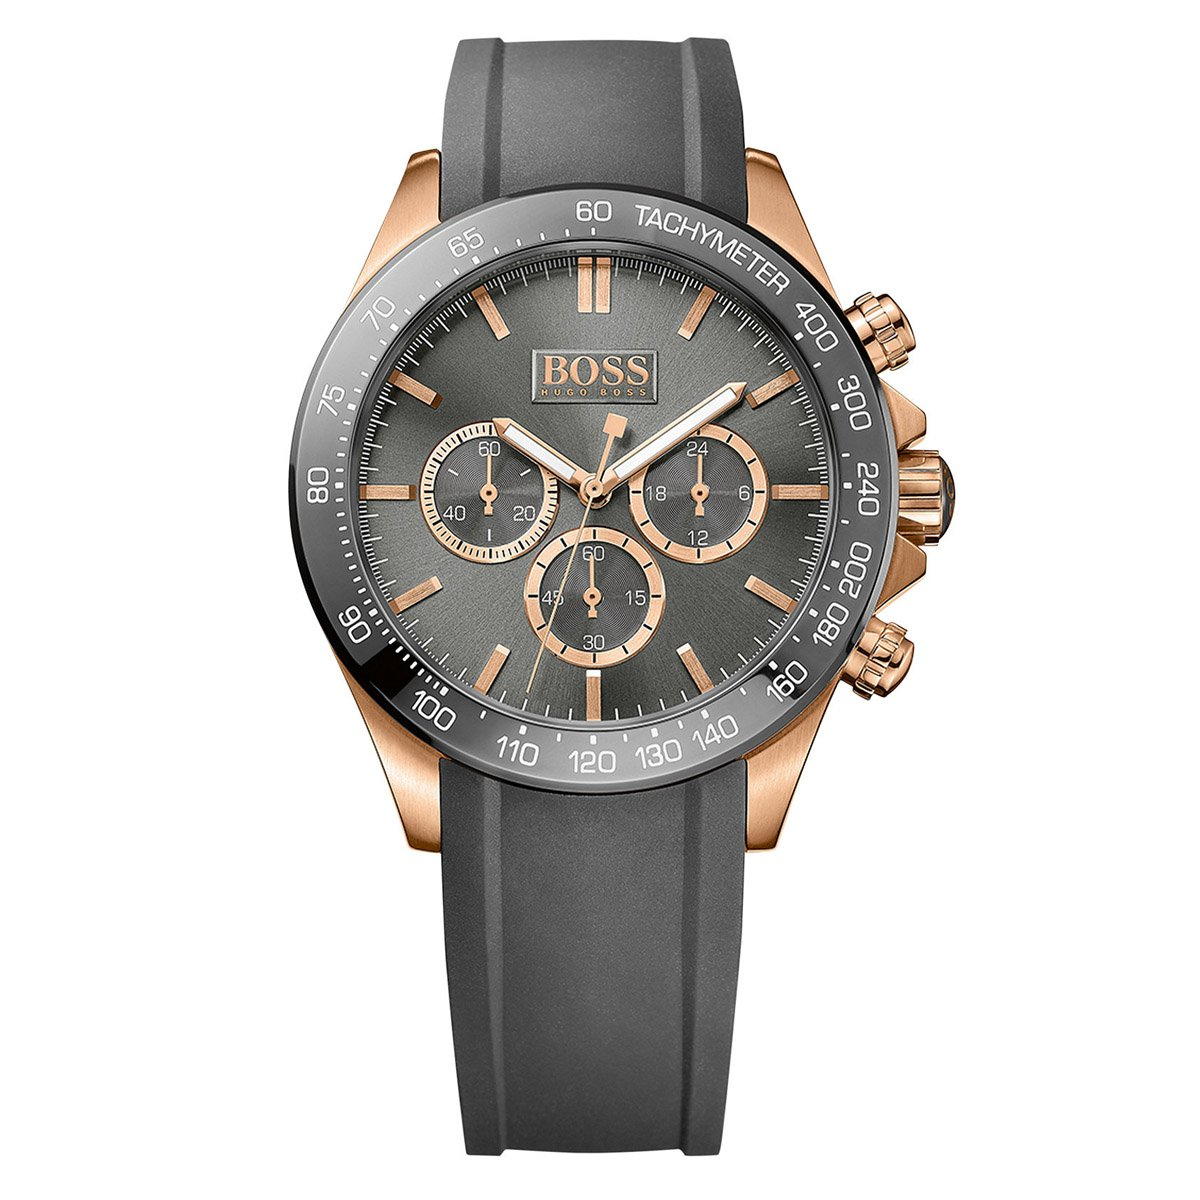 Hugo Boss Mens Men's Chronograph Analog Dress Quartz Watch (Imported) 1513342